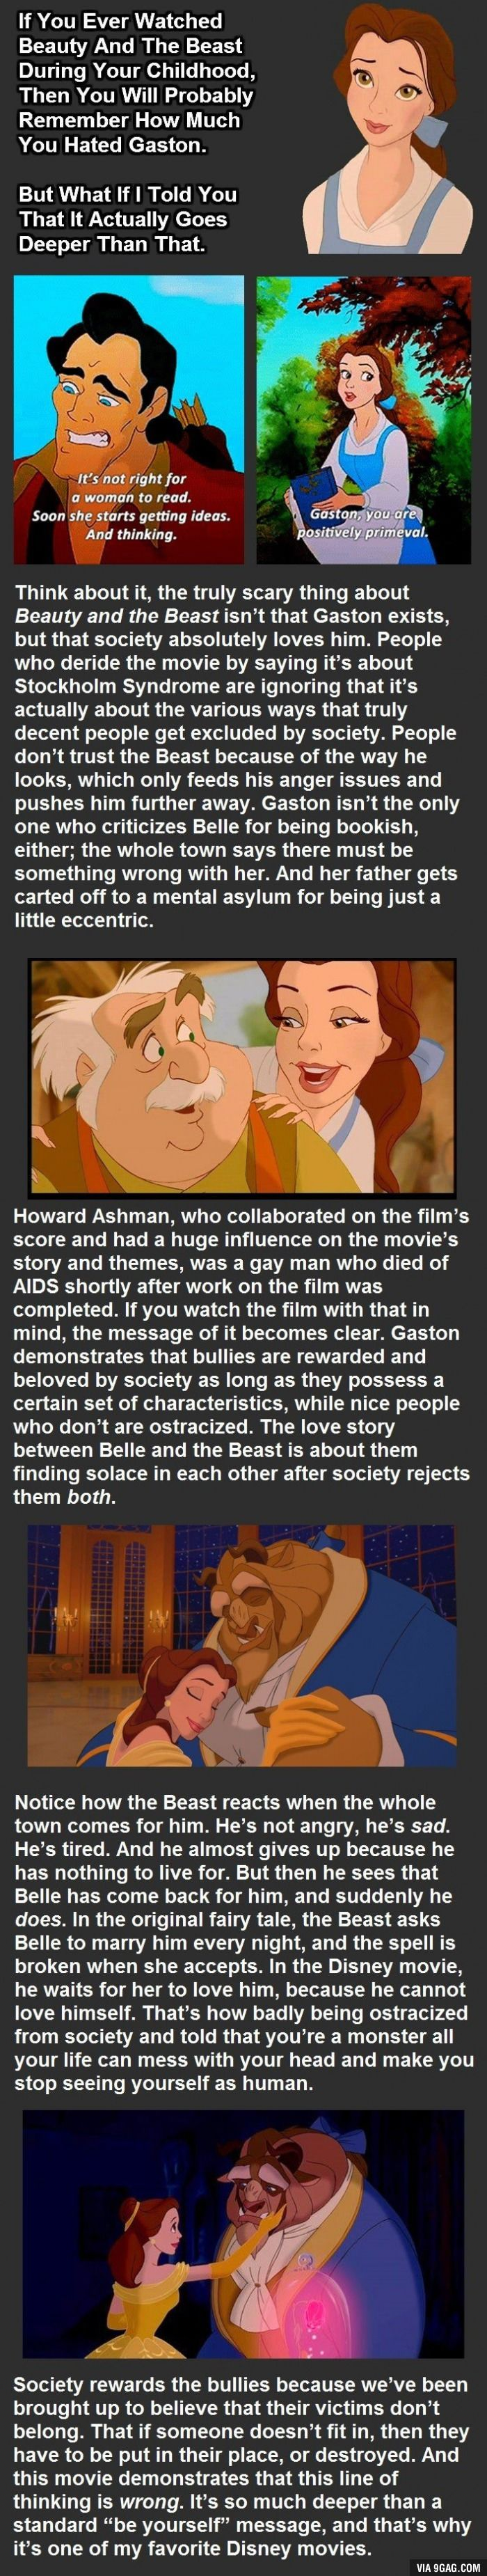 This just changed the way we see Beauty and the Beast. Mind blown. Worth reading all the way through.